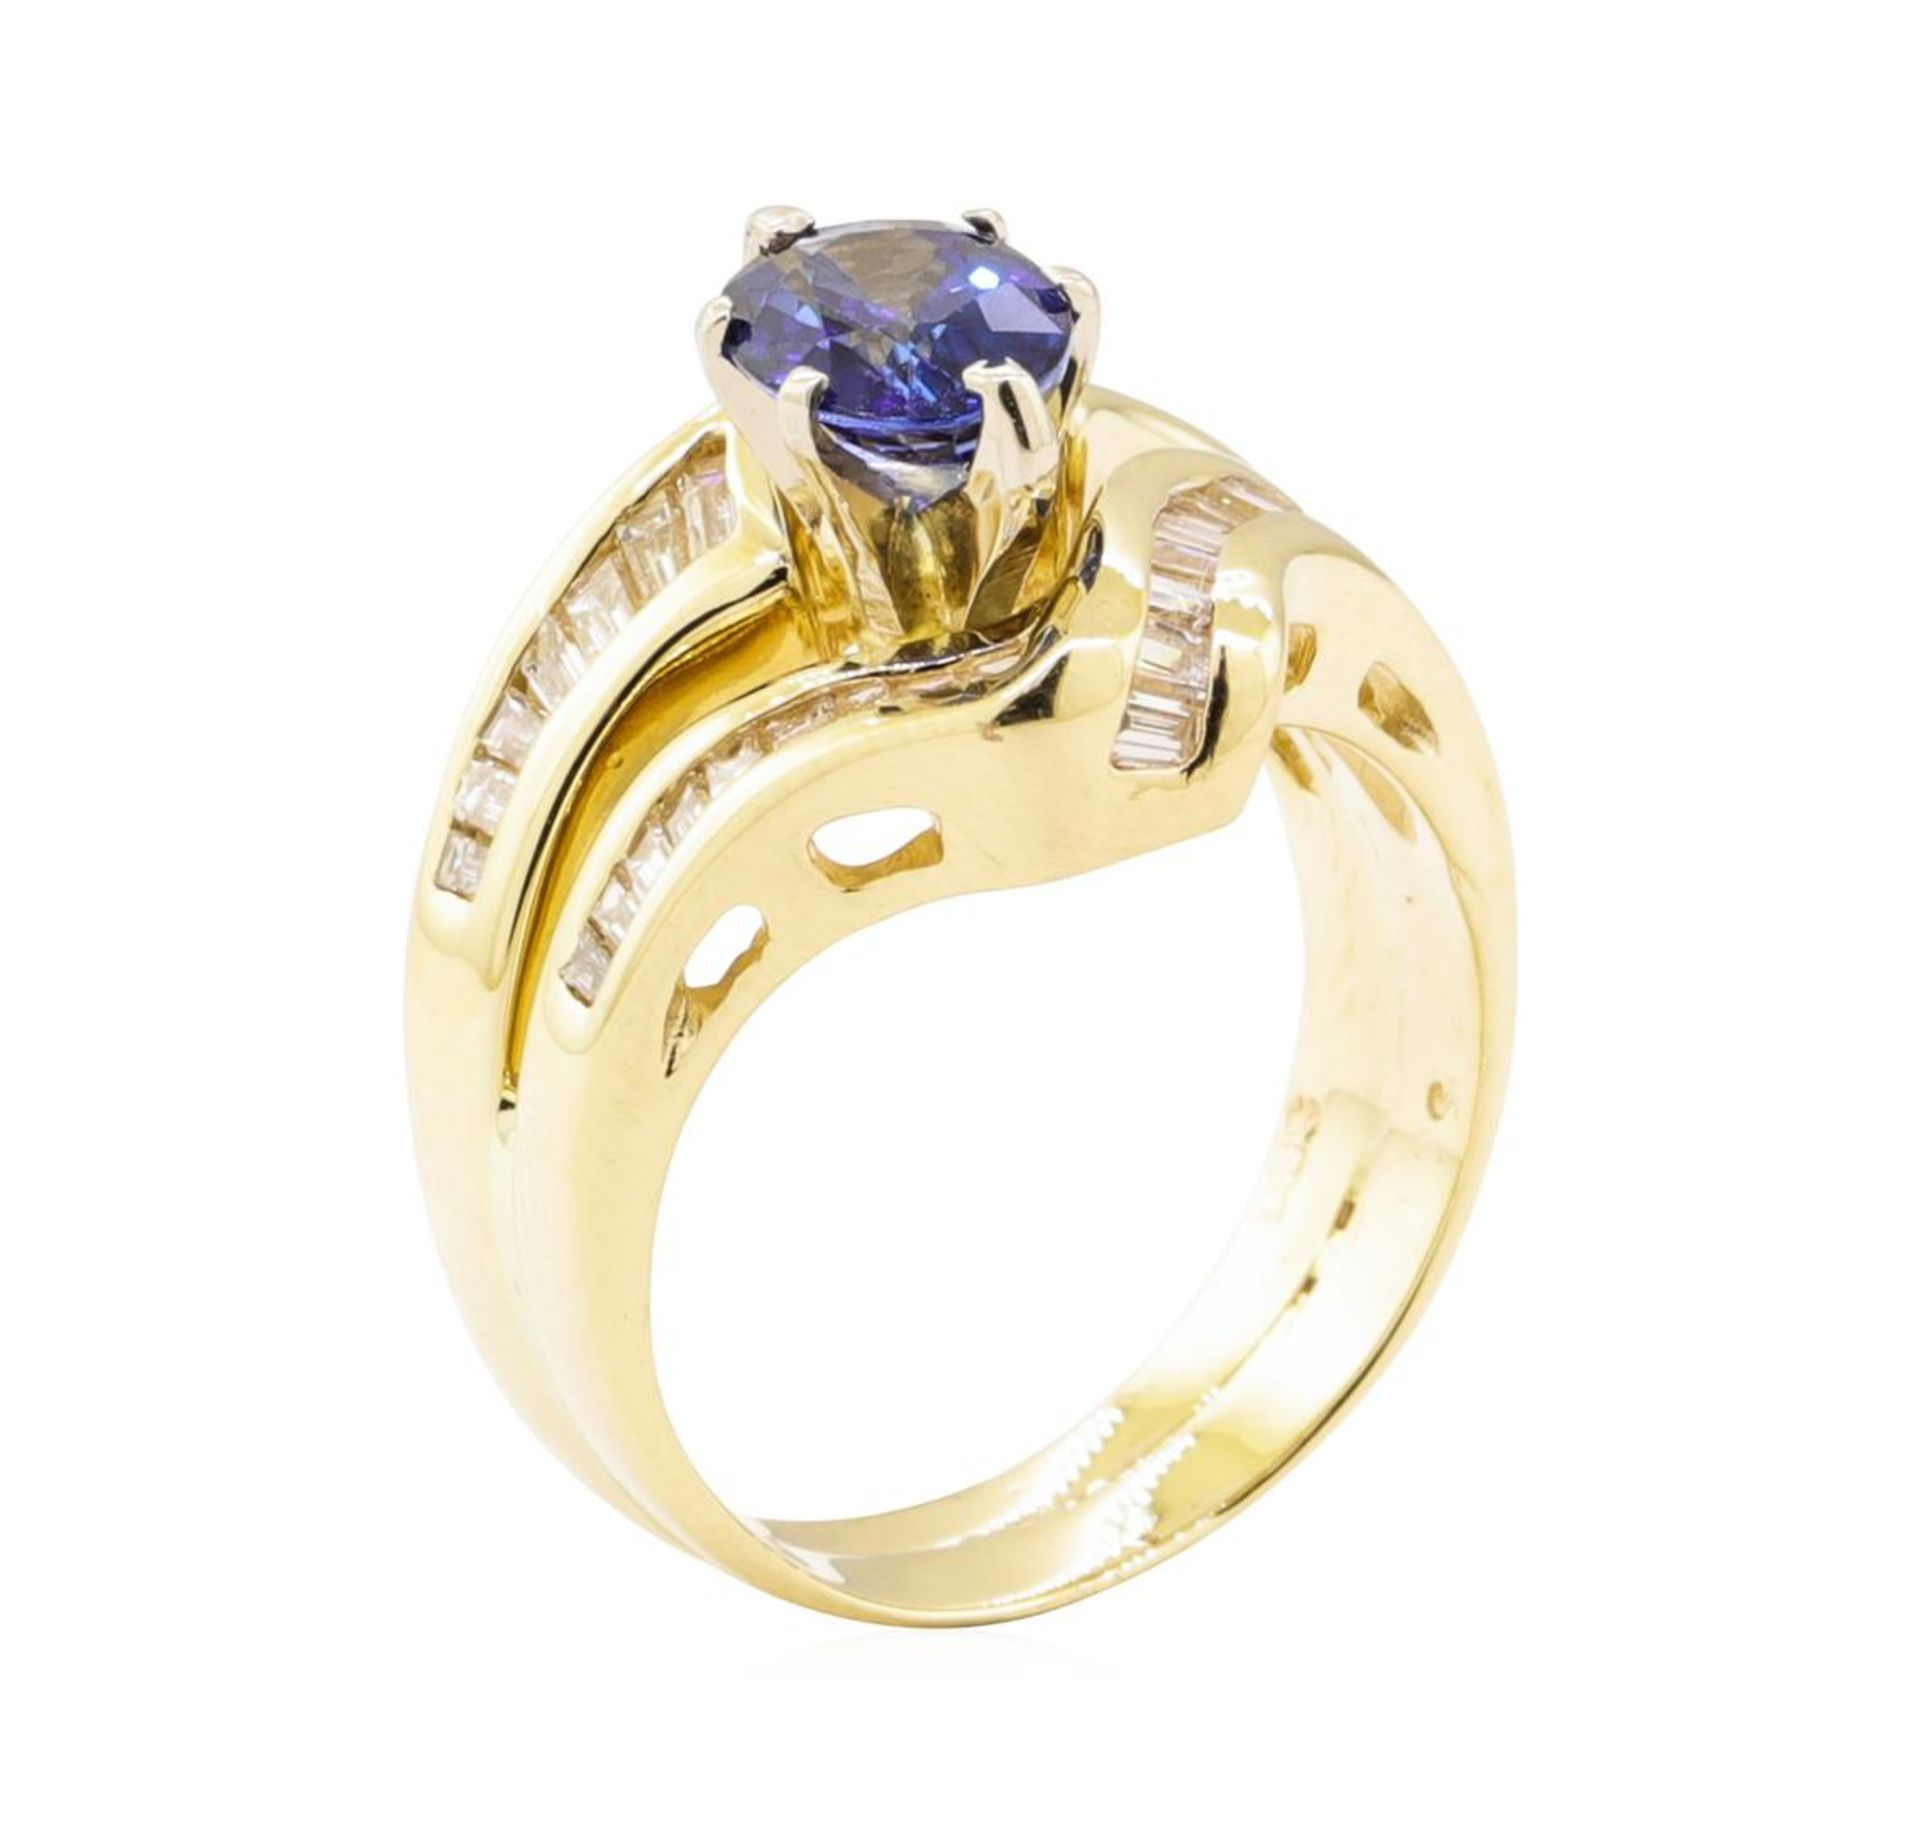 2.28 ctw Blue Sapphire And Diamond Ring And Attached Band - 14KT Yellow Gold - Image 4 of 5